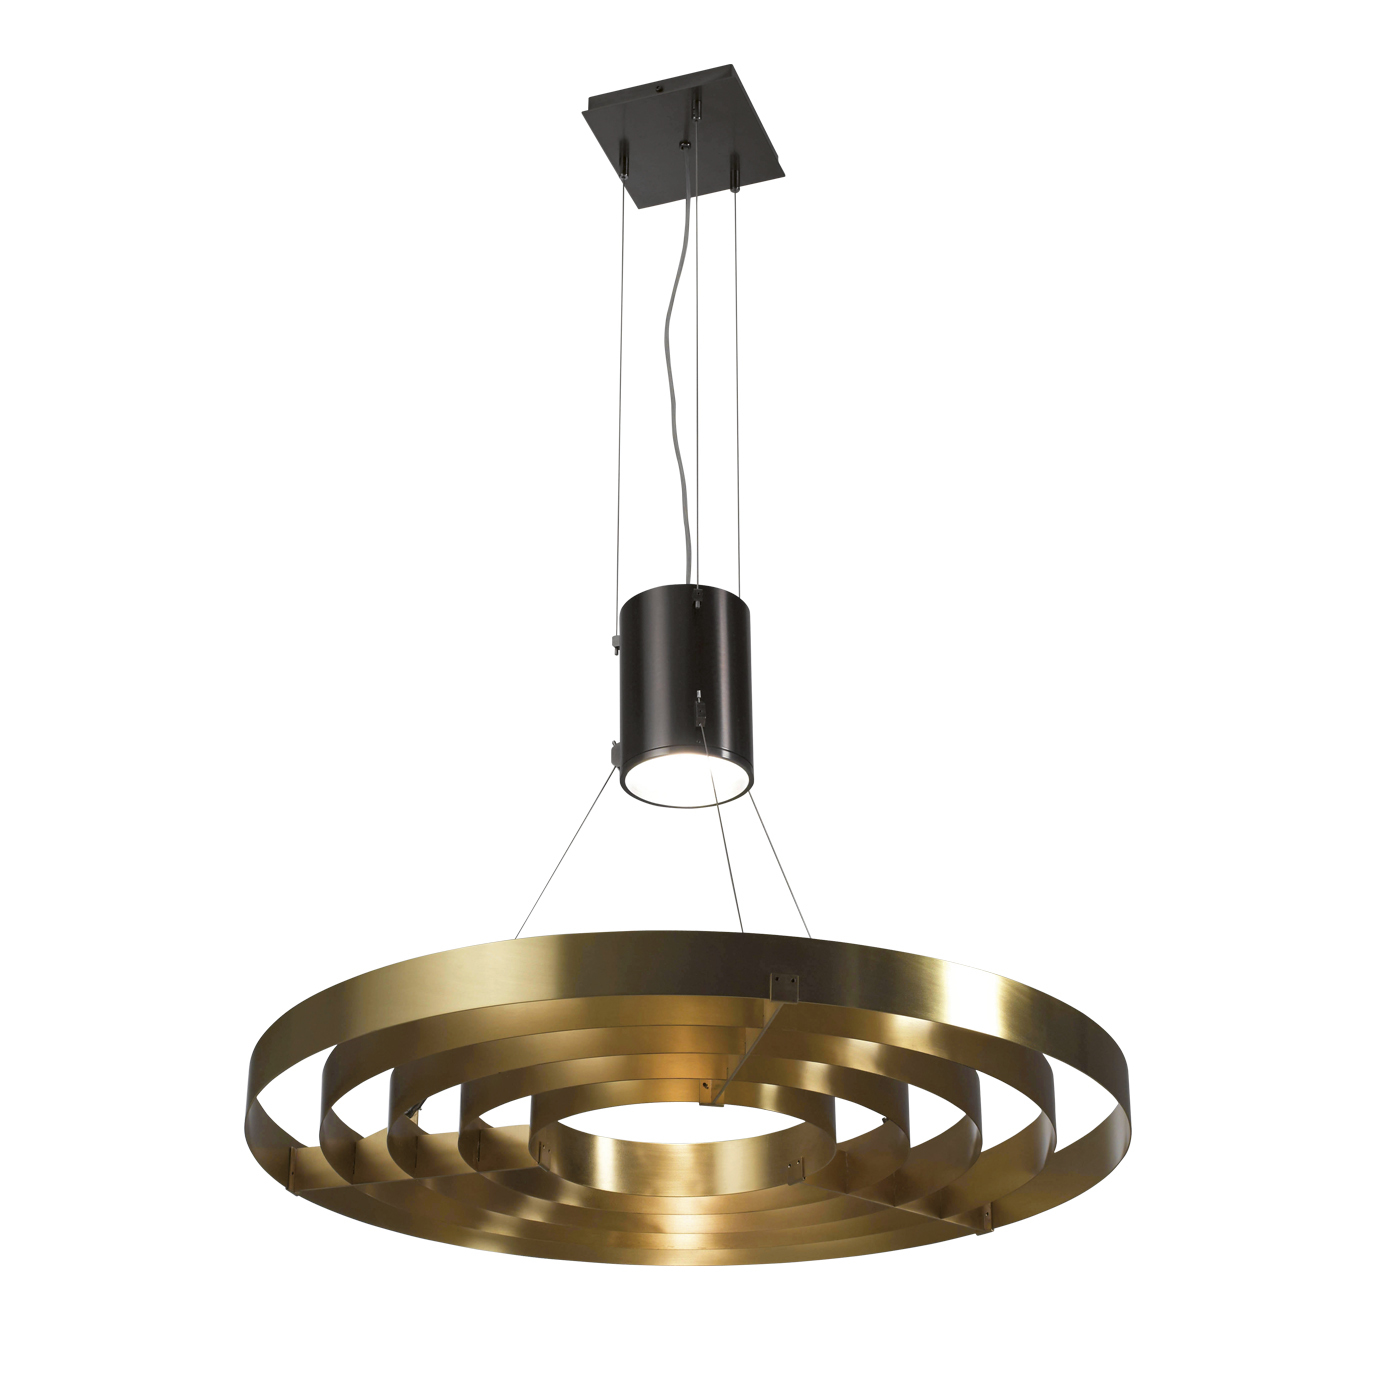 Laura Meroni Dark Pendant Lighting